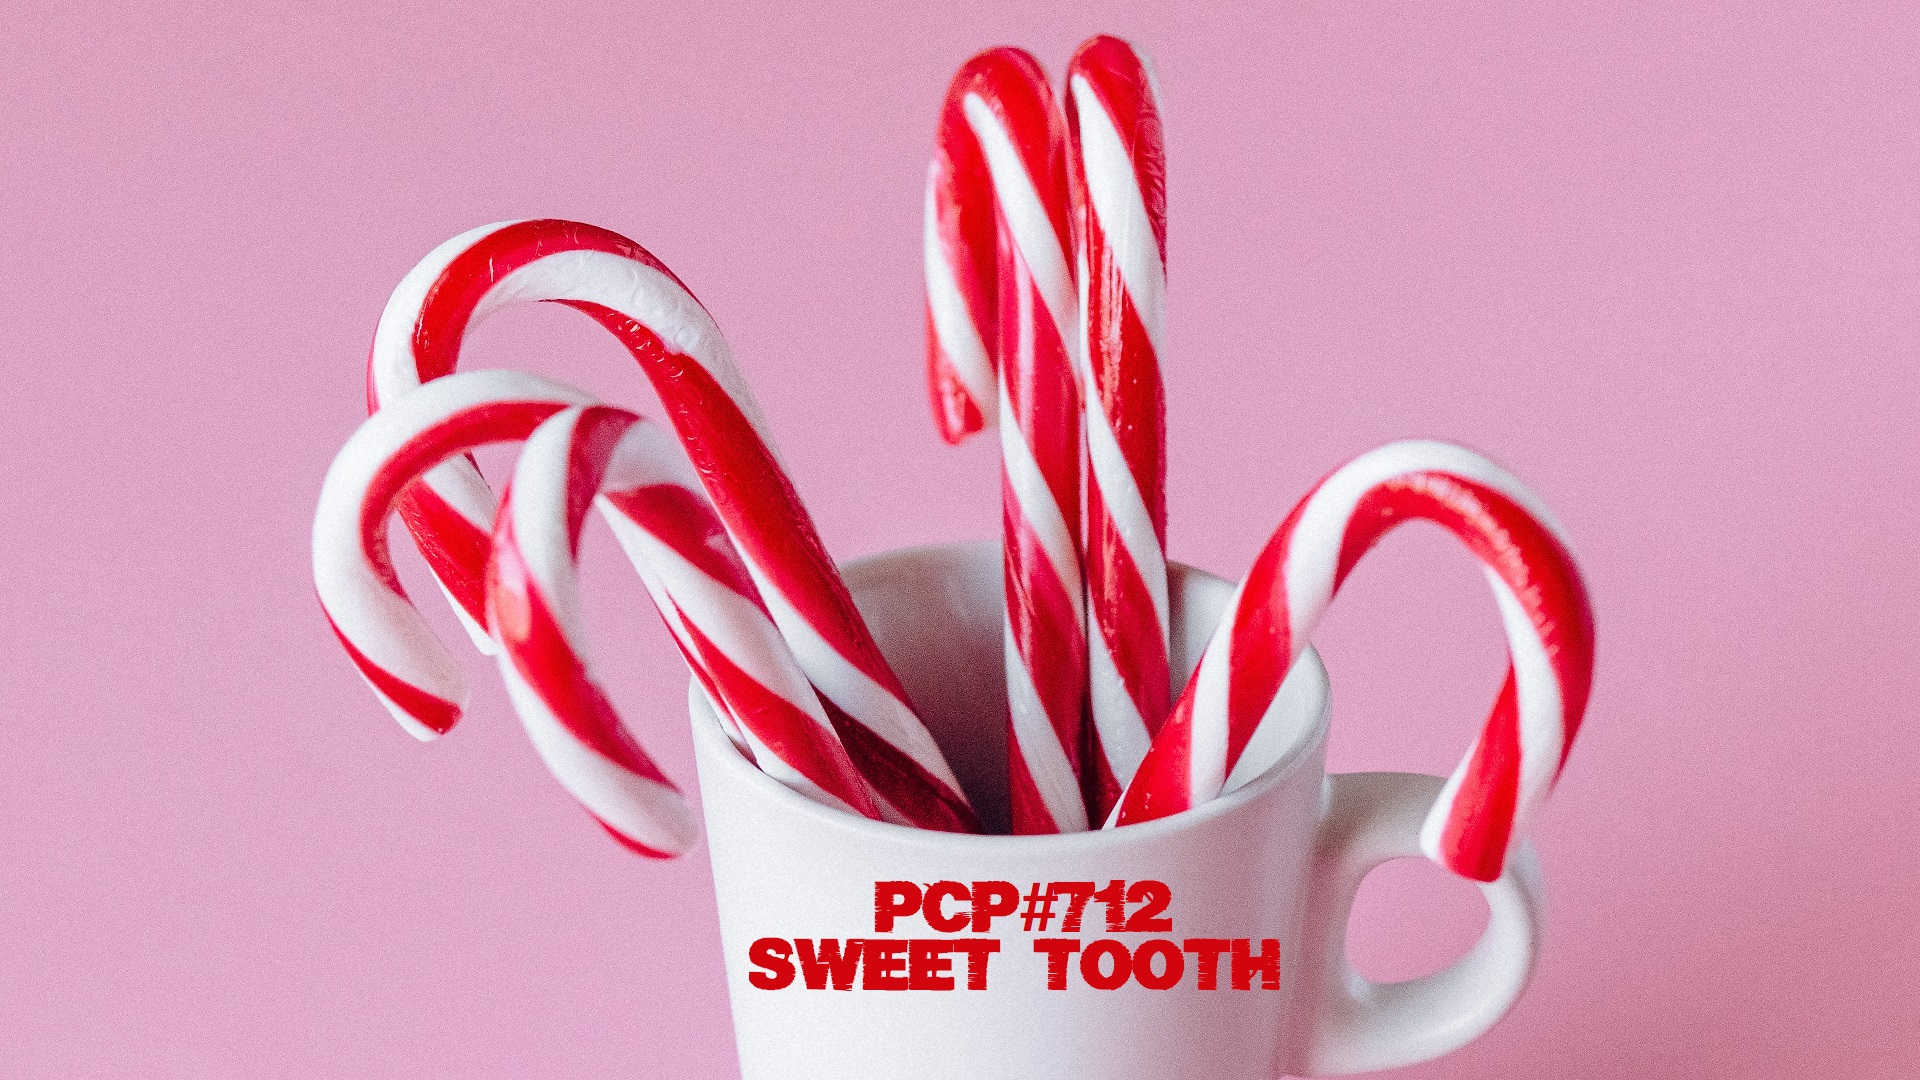 PCP#712... Sweet Tooth.....